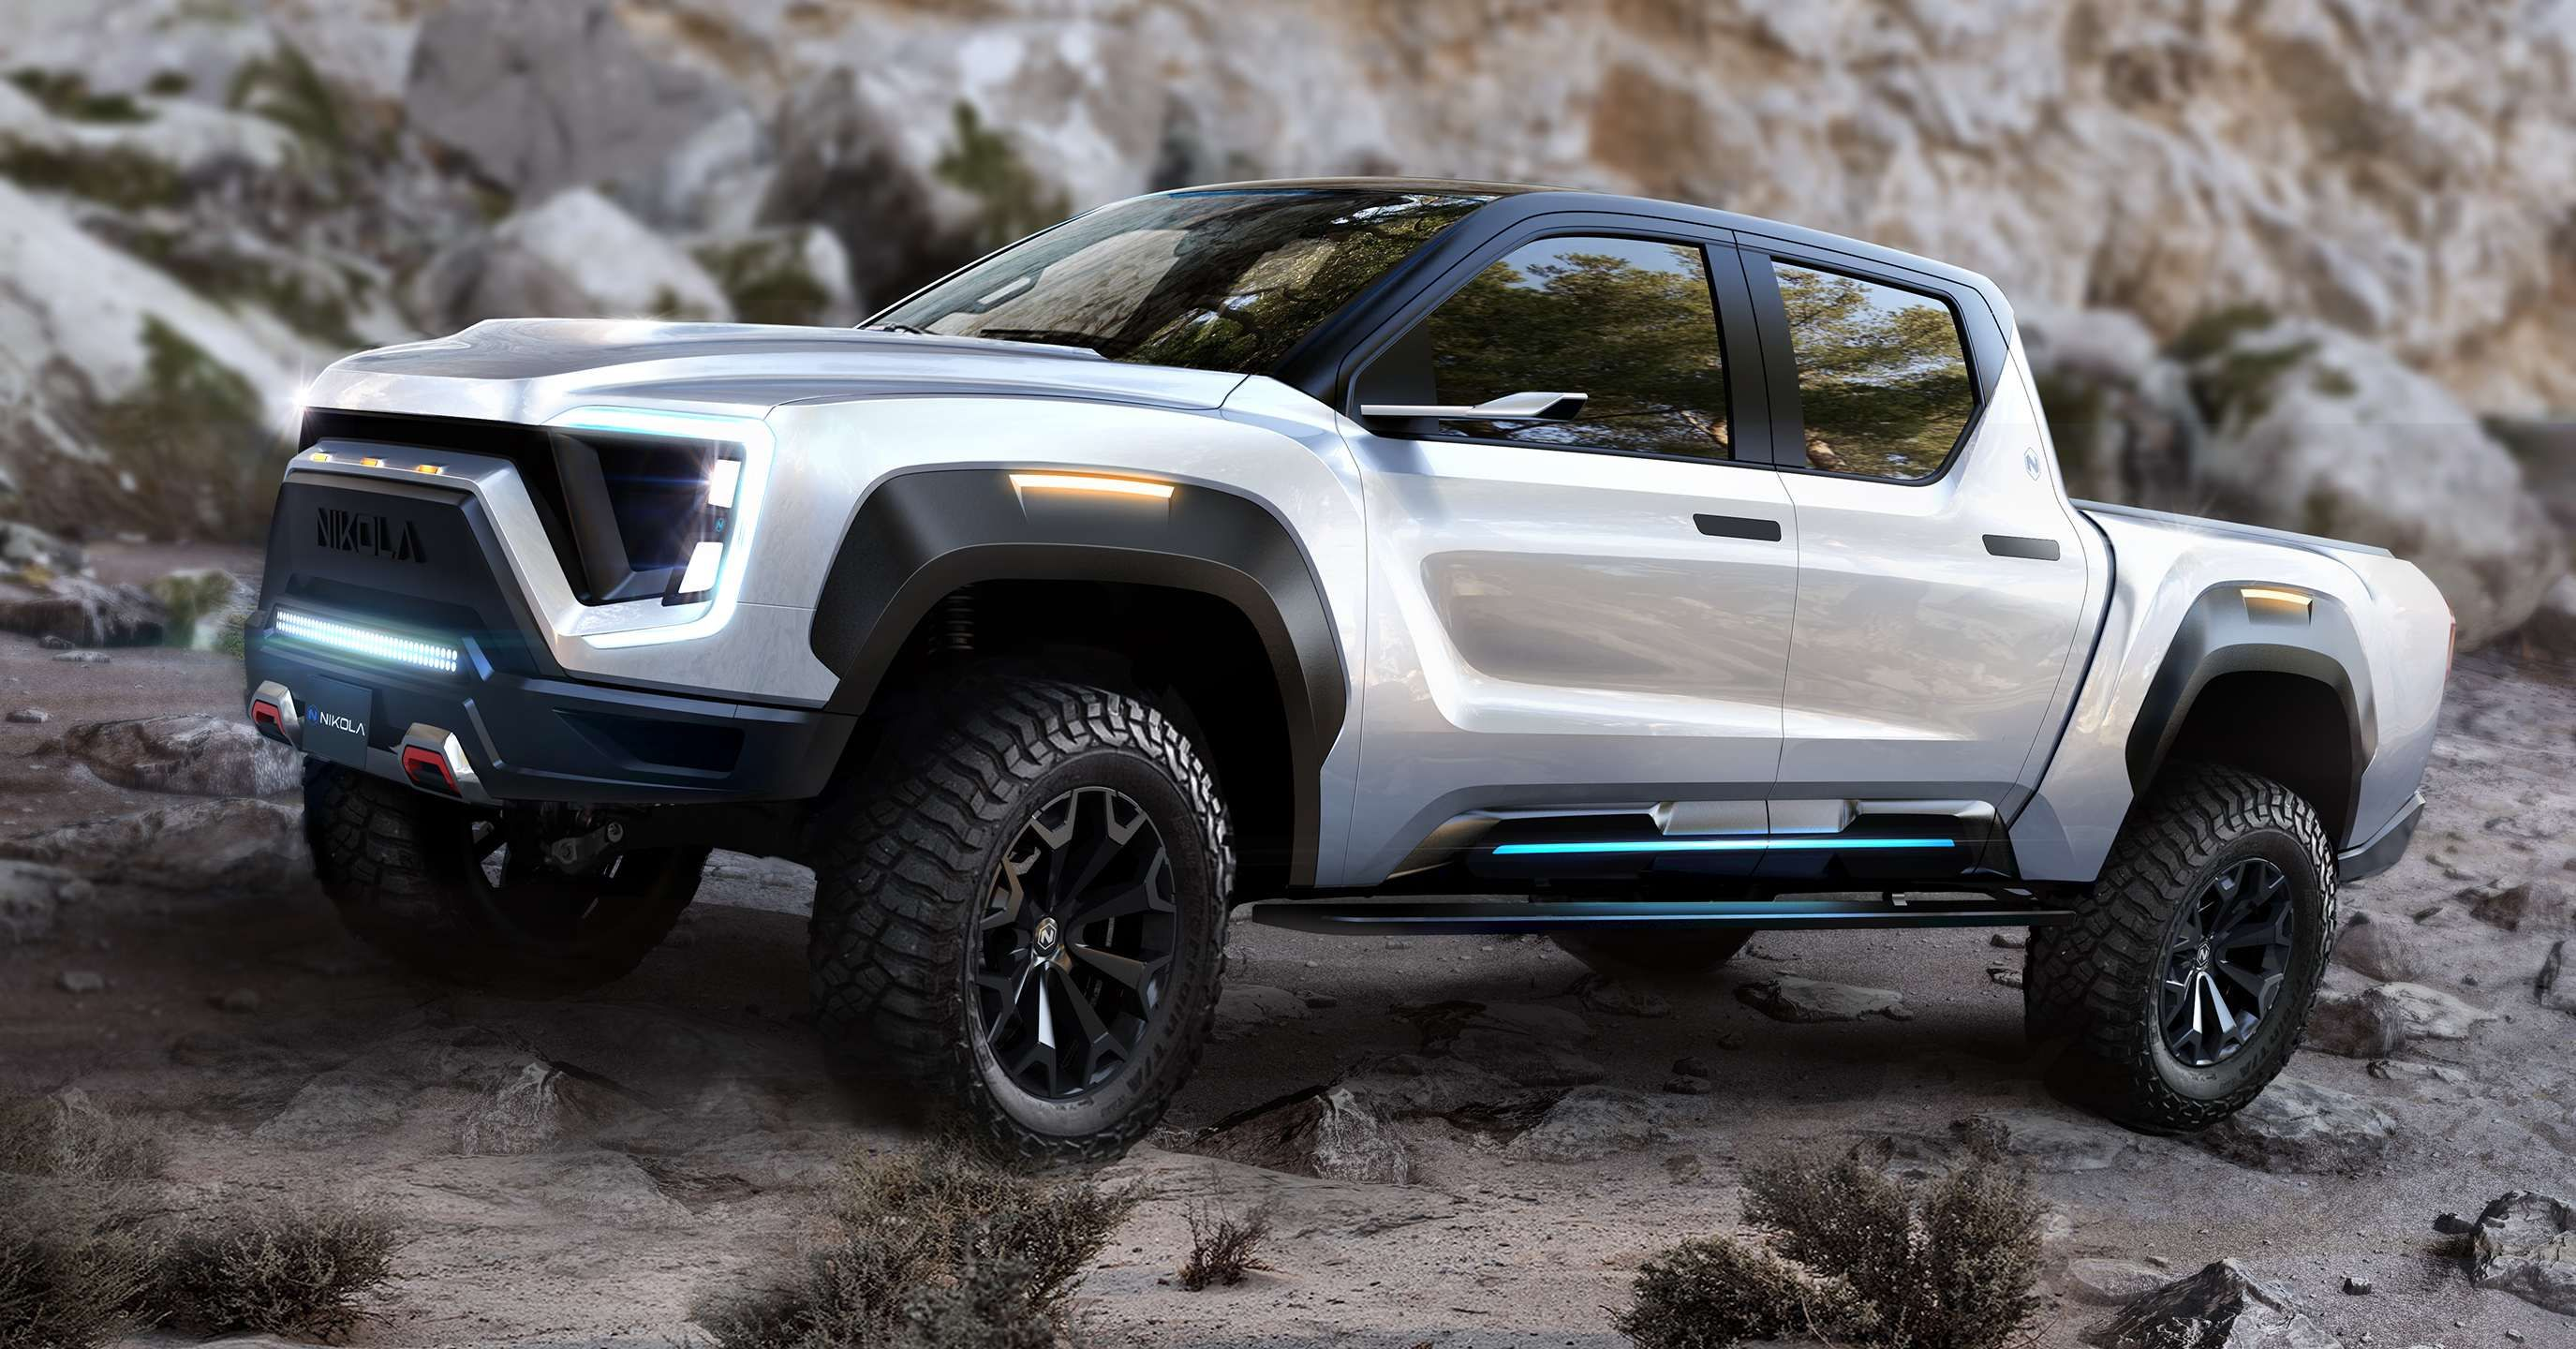 Nikola Badger Electric Pickup Expected To Enter Production In 2022